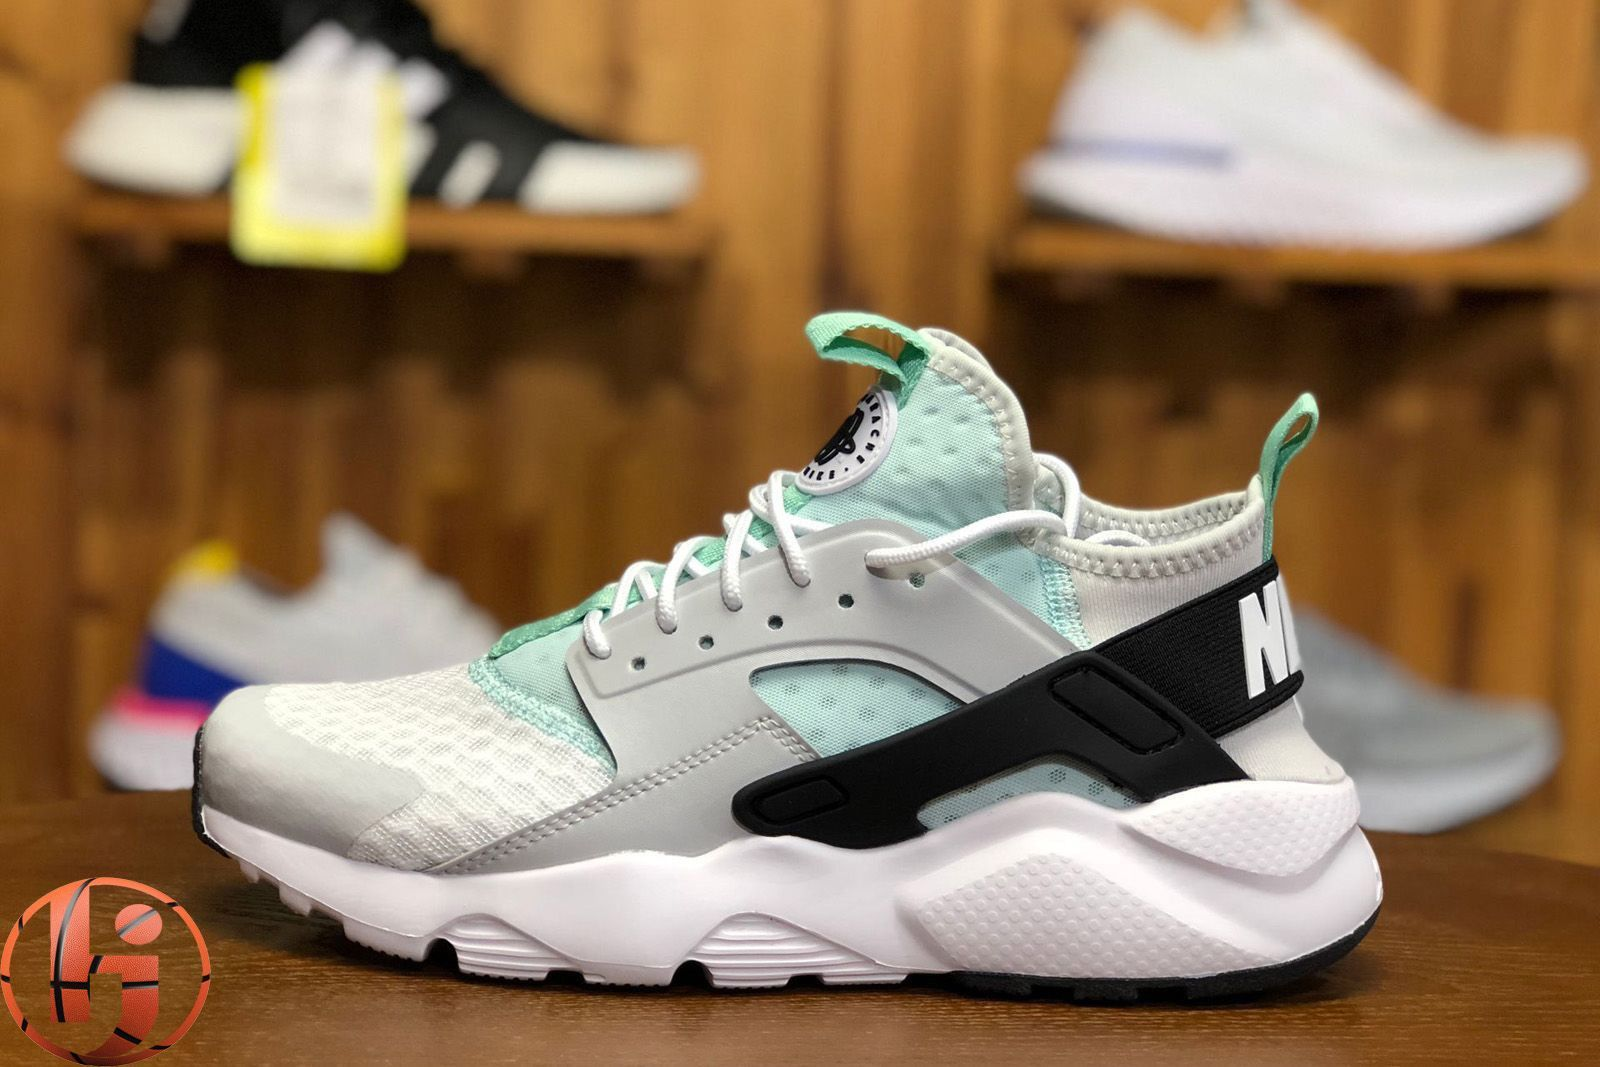 new product 9cae2 6e1c1 Nike Air Huarache Run Ultra Pure Platinum Black-Igloo